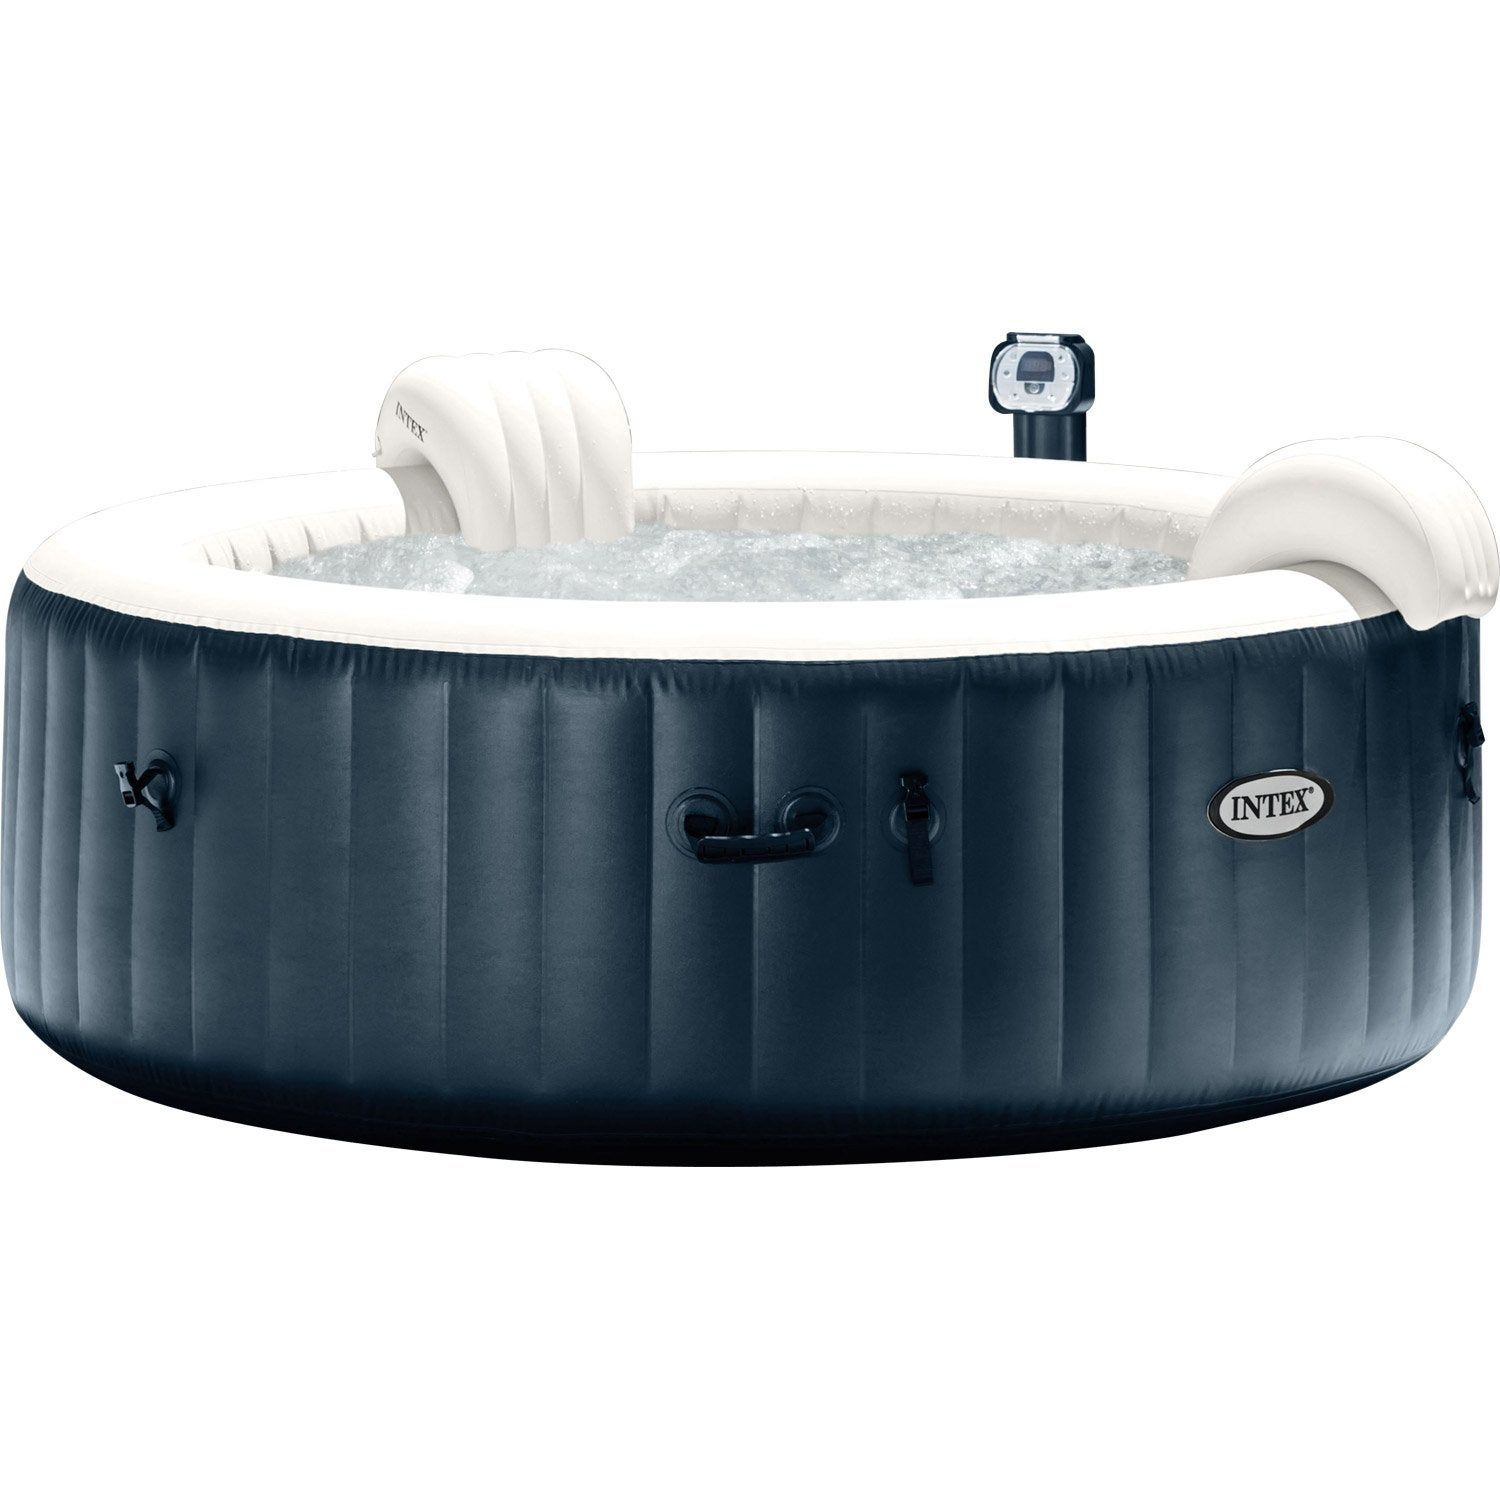 Spa Intex 6 Personnes Leroy Merlin spa gonflable intex pure spa bulles led rond, 4 places